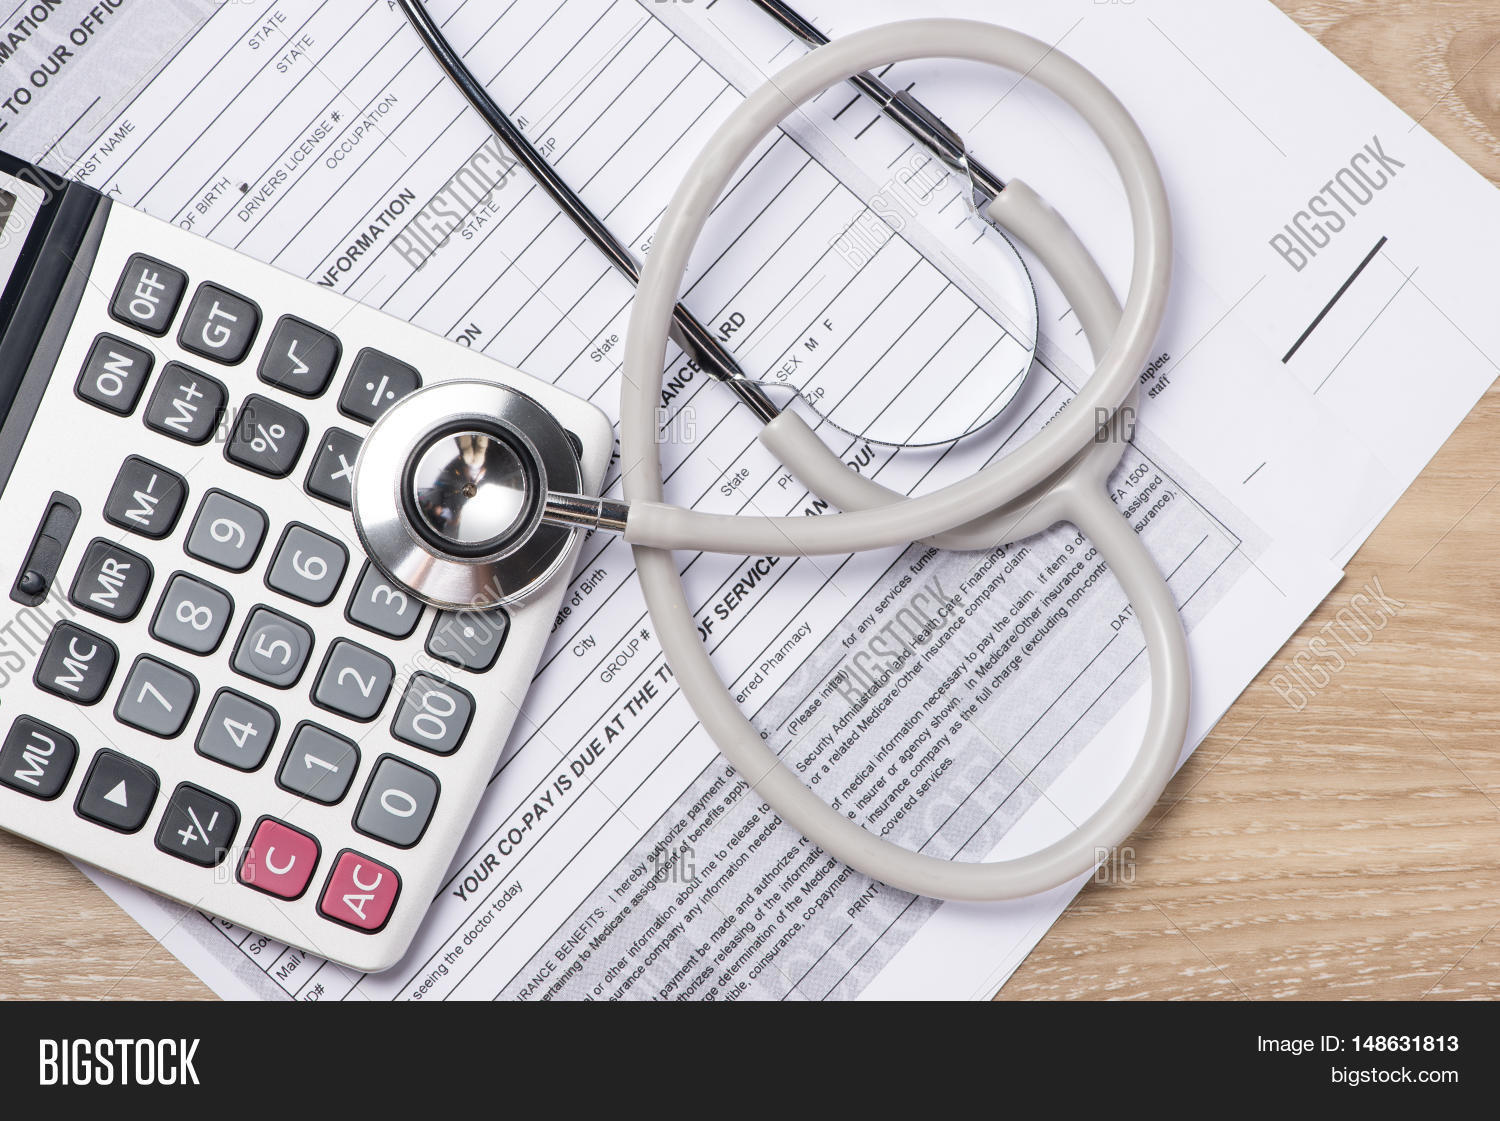 Health Care Costs Image Photo Free Trial Bigstock